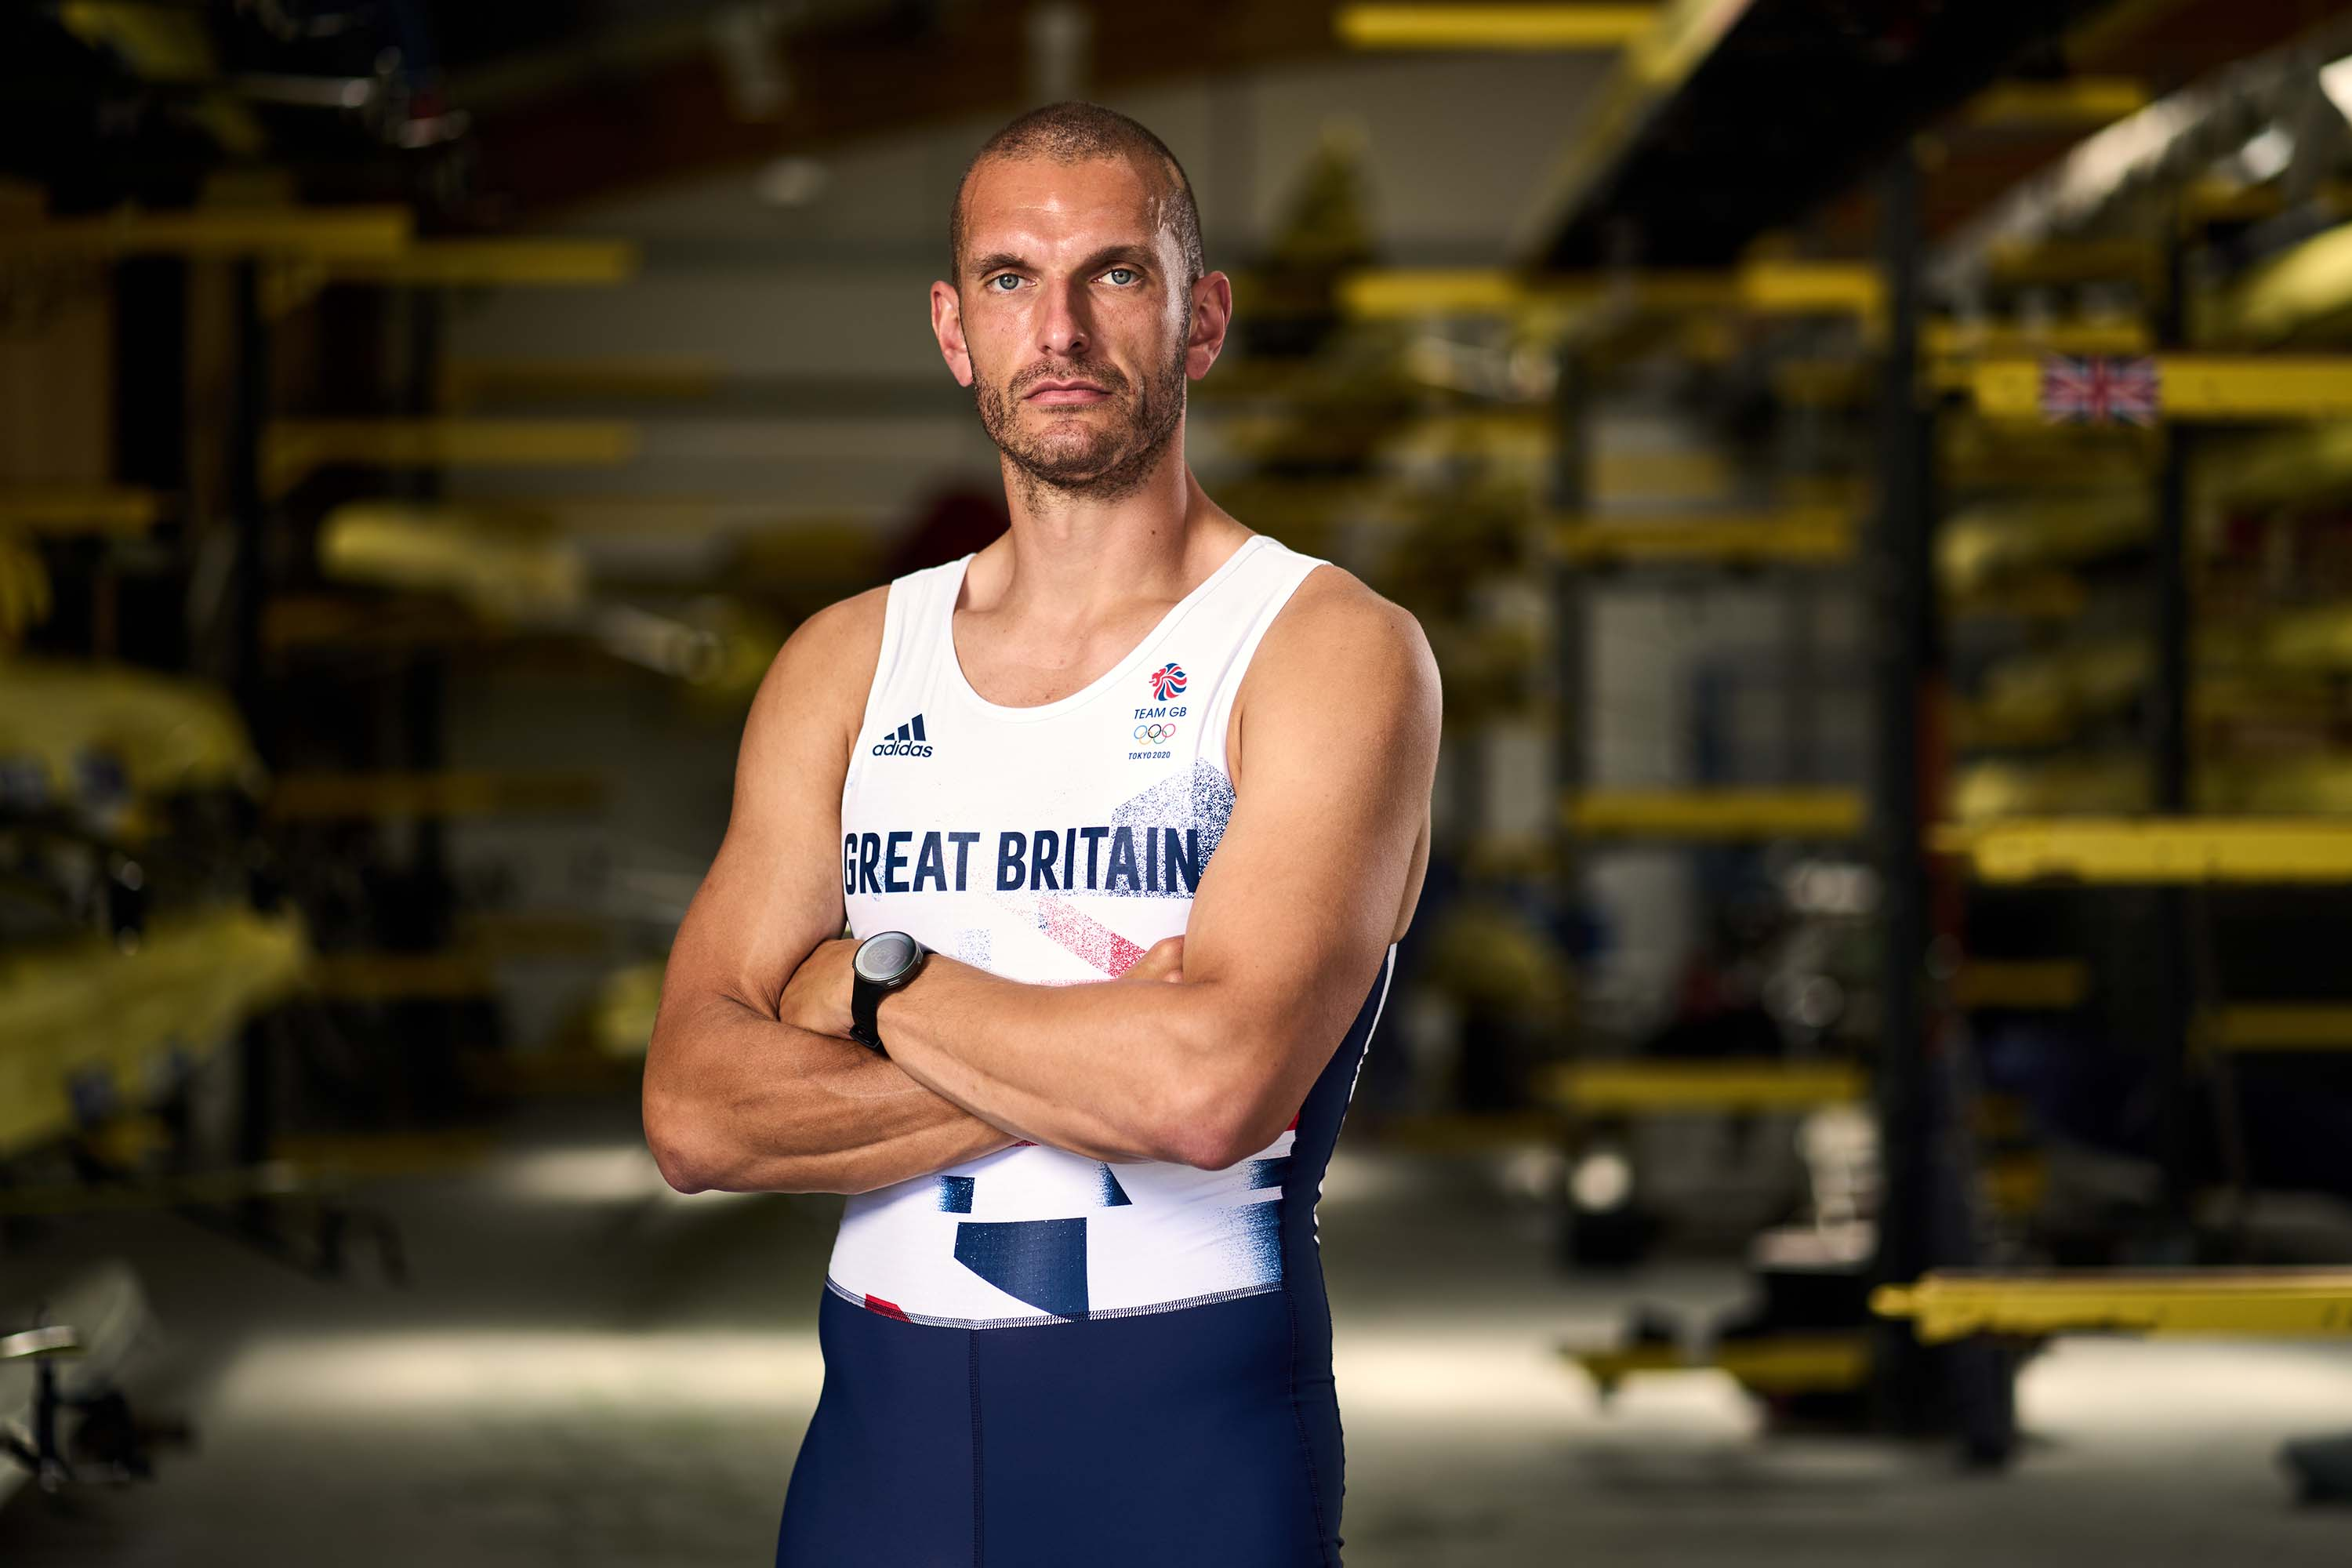 Great Britain's Mohamed Sbihi is pictured in Reading, England, on June 9.